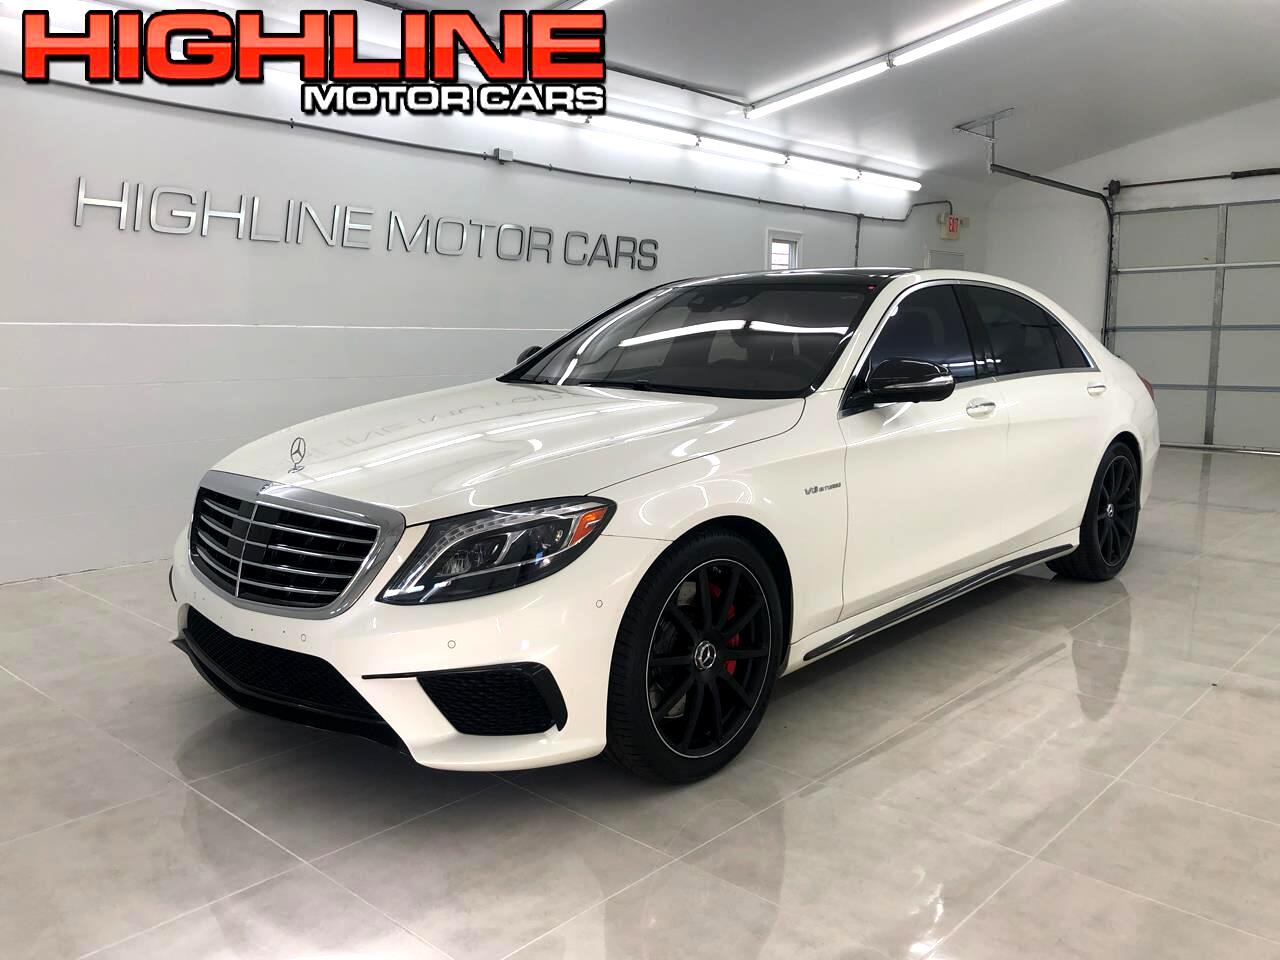 2015 Mercedes-Benz S-Class 4dr Sdn AMG S 63 4MATIC